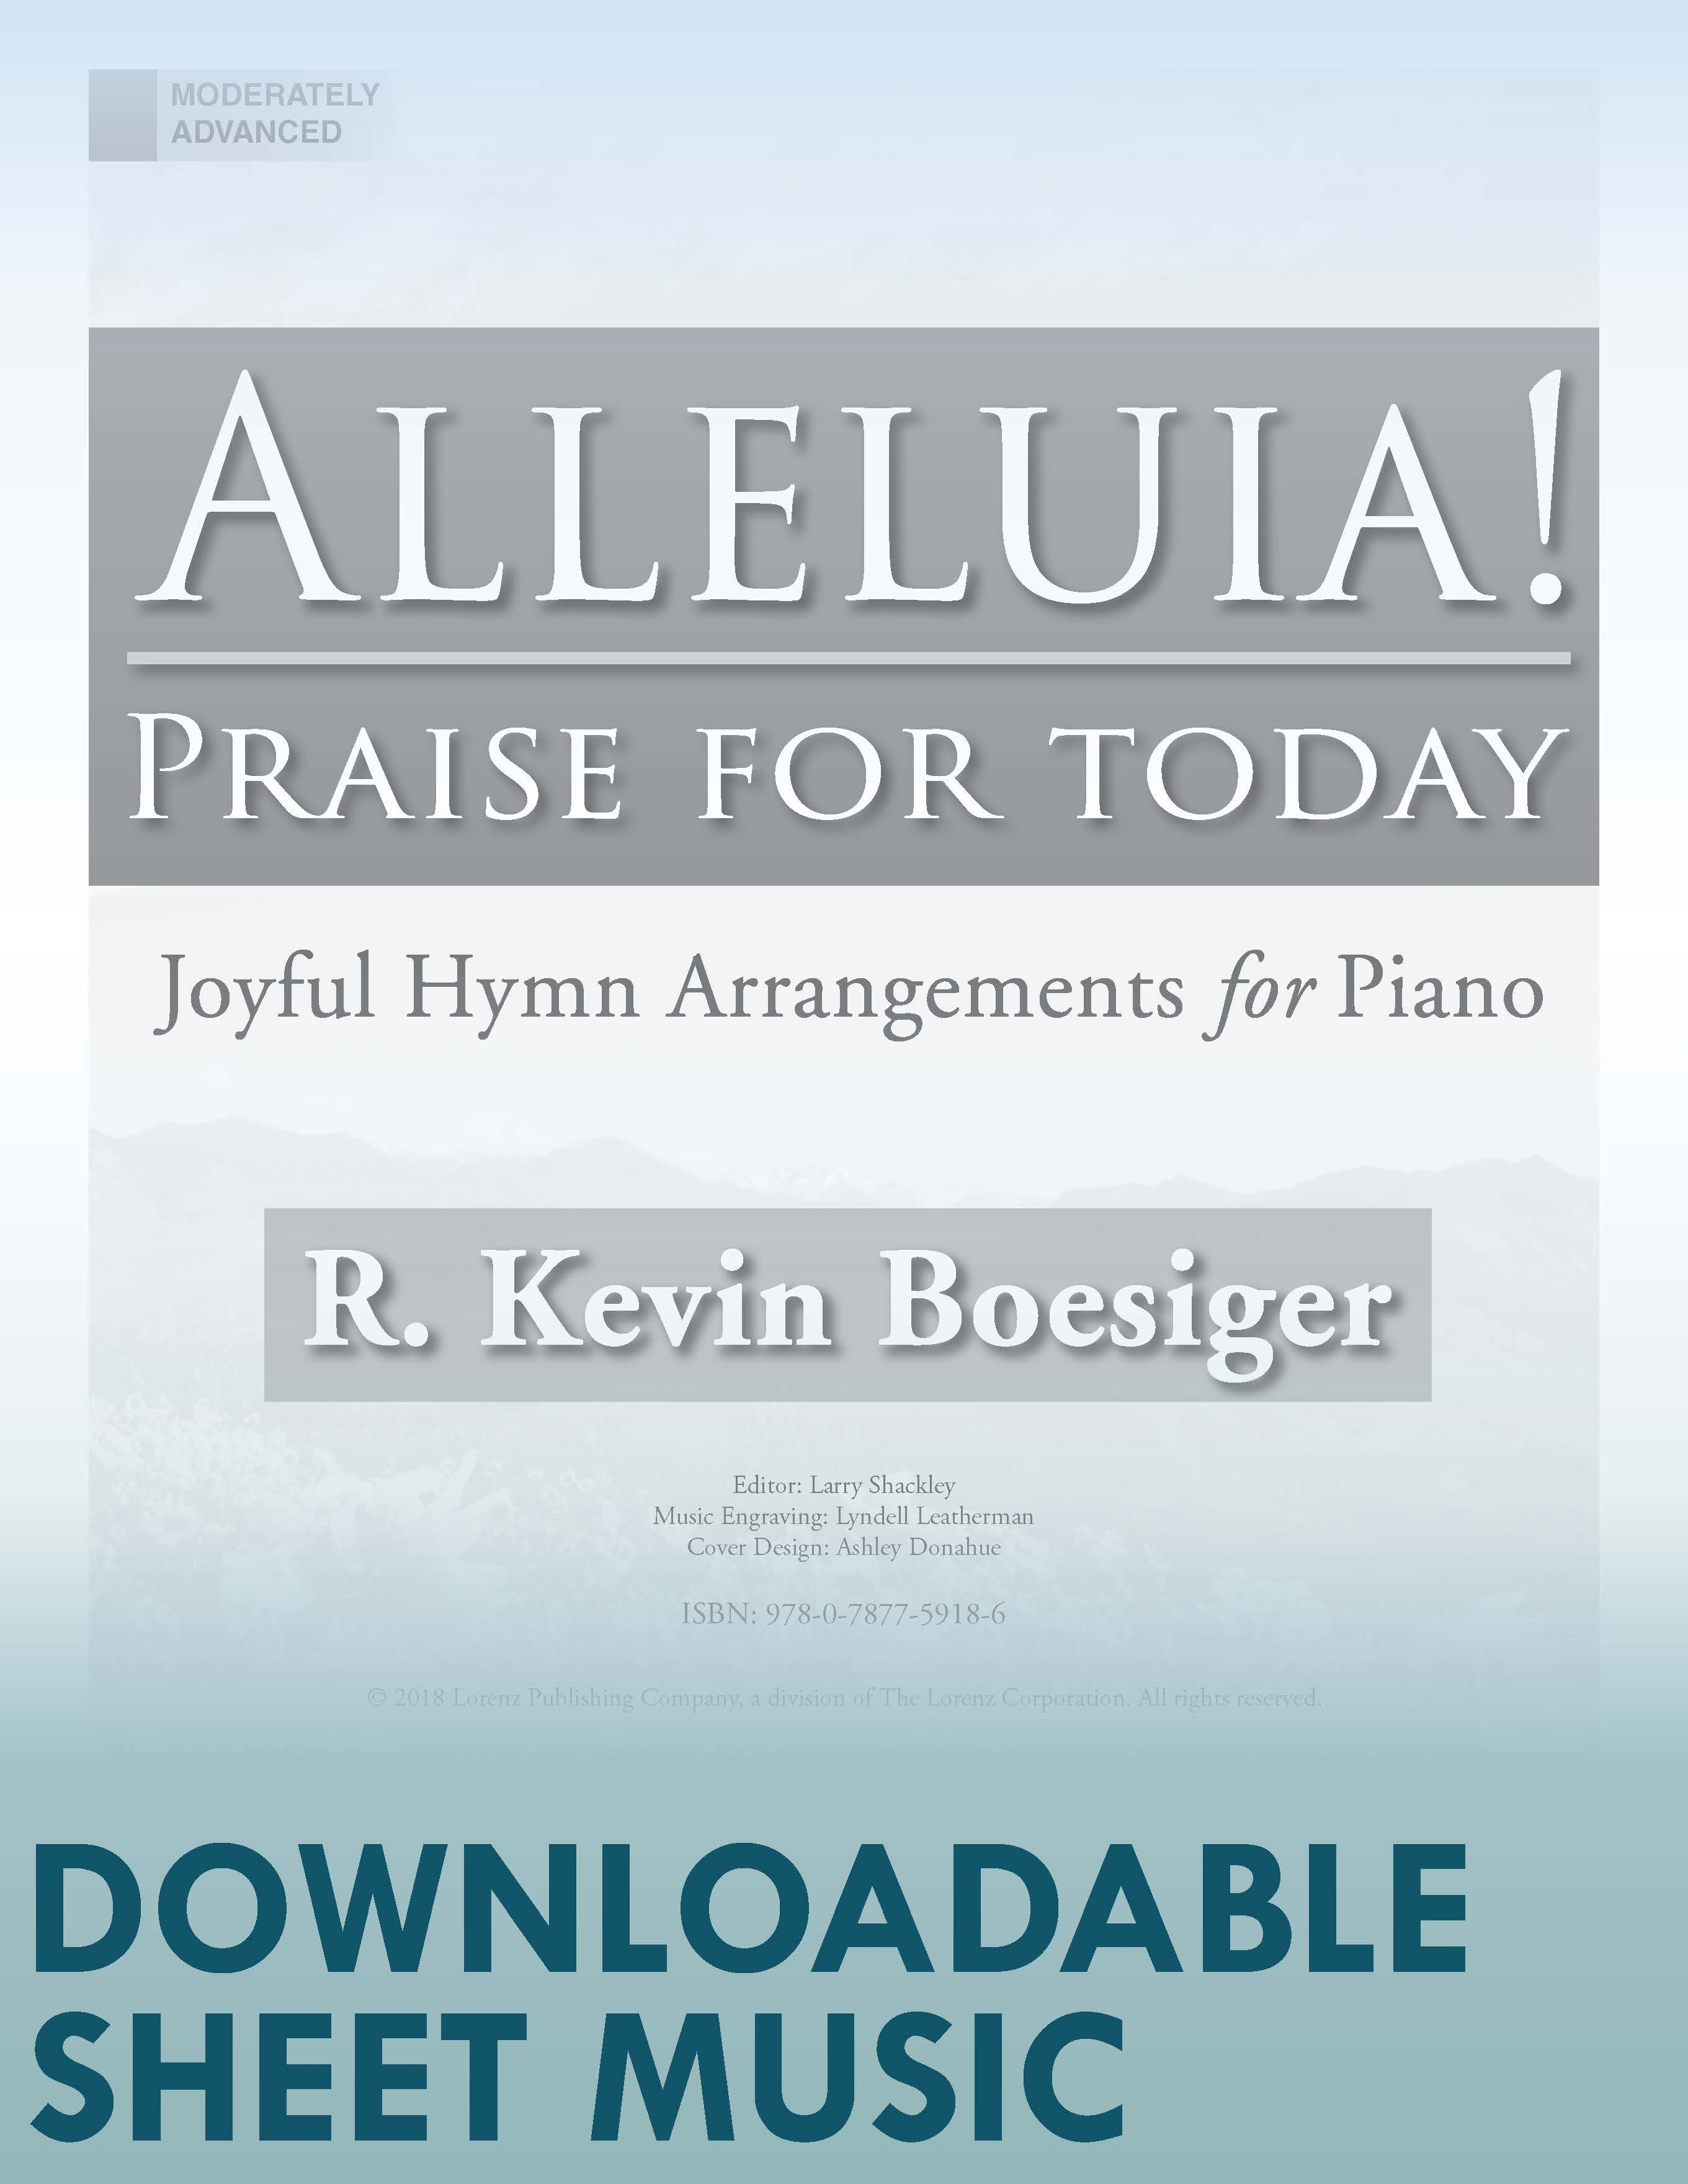 Alleluia! Praise for Today (Digital Delivery)